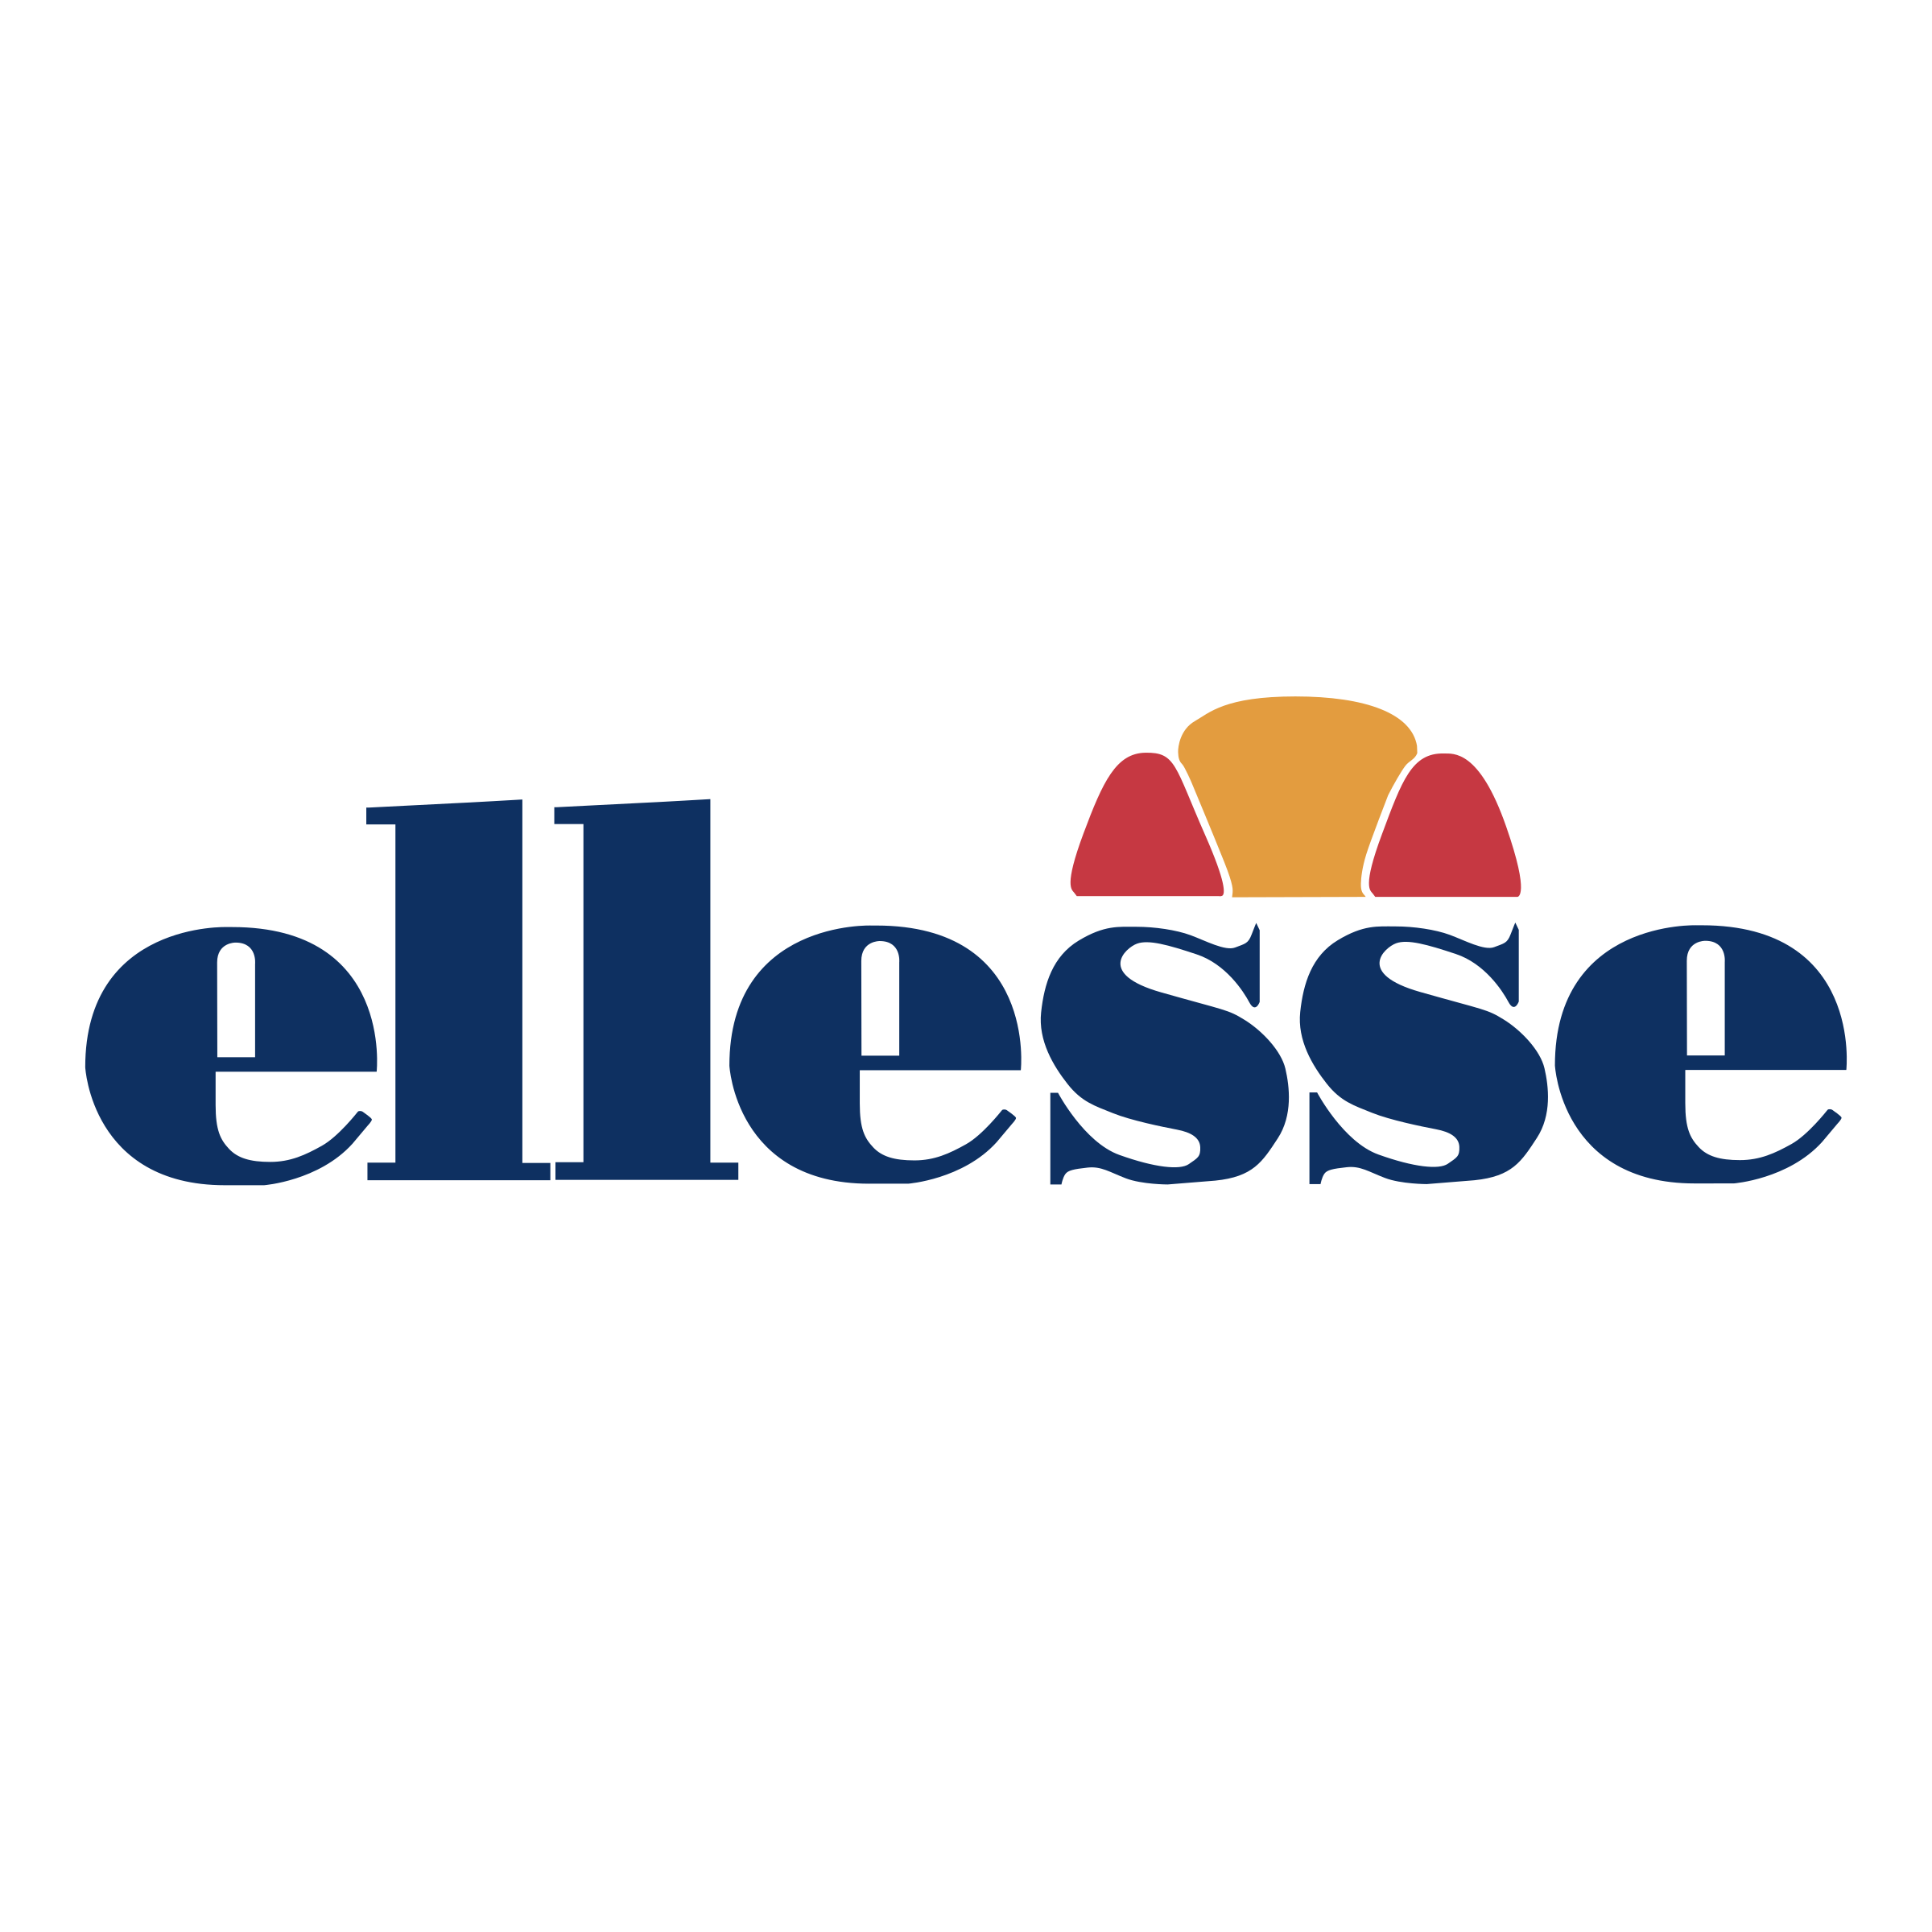 Ellesse shoes logo